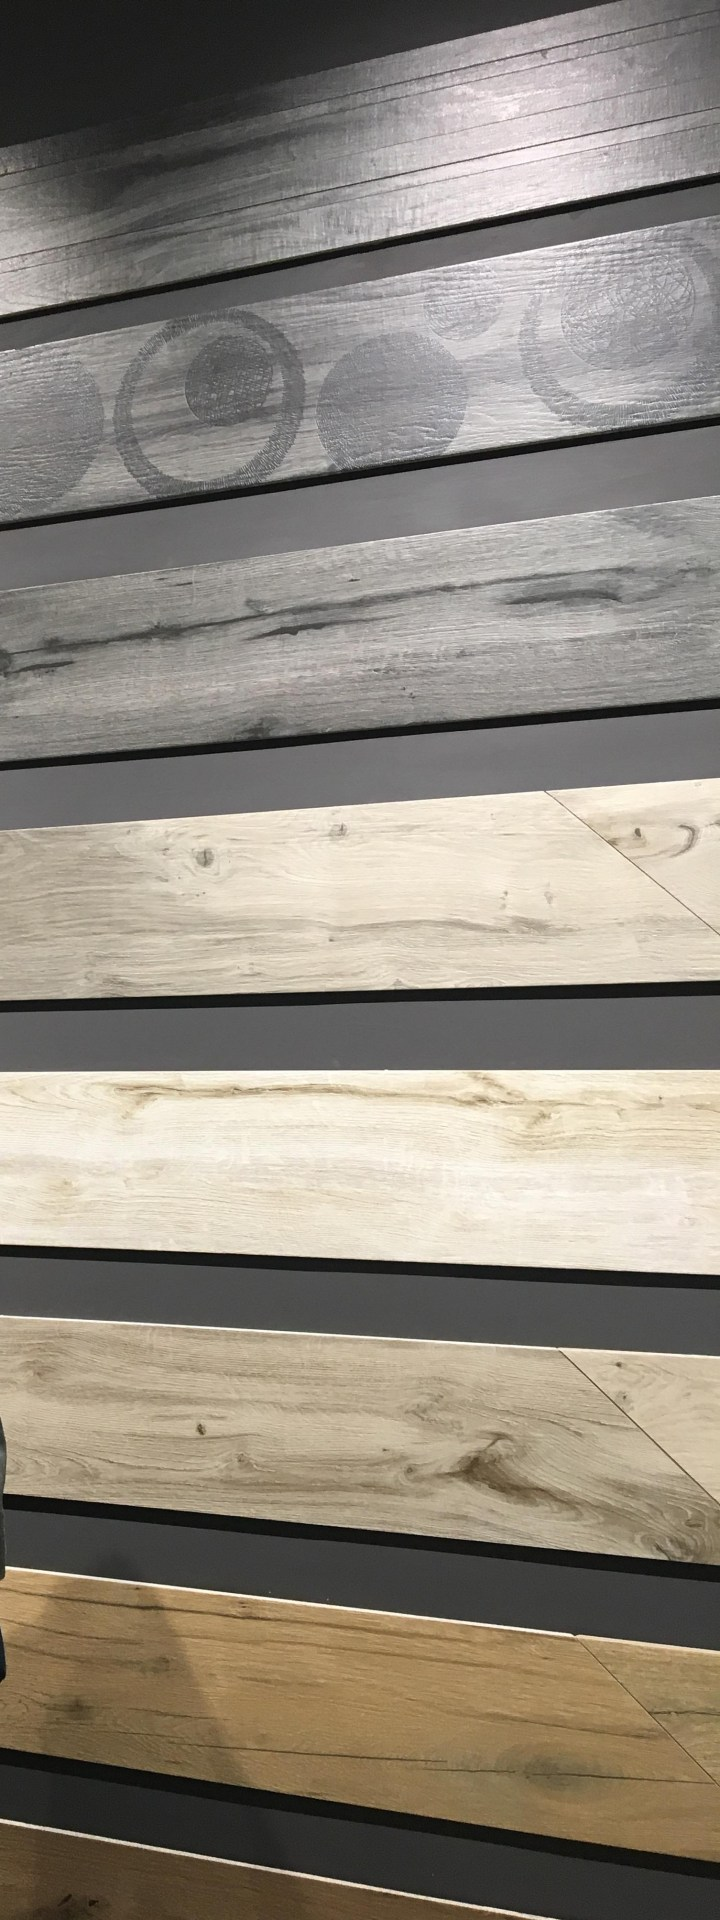 textured patterned wood look tile rondine cersaie 2019